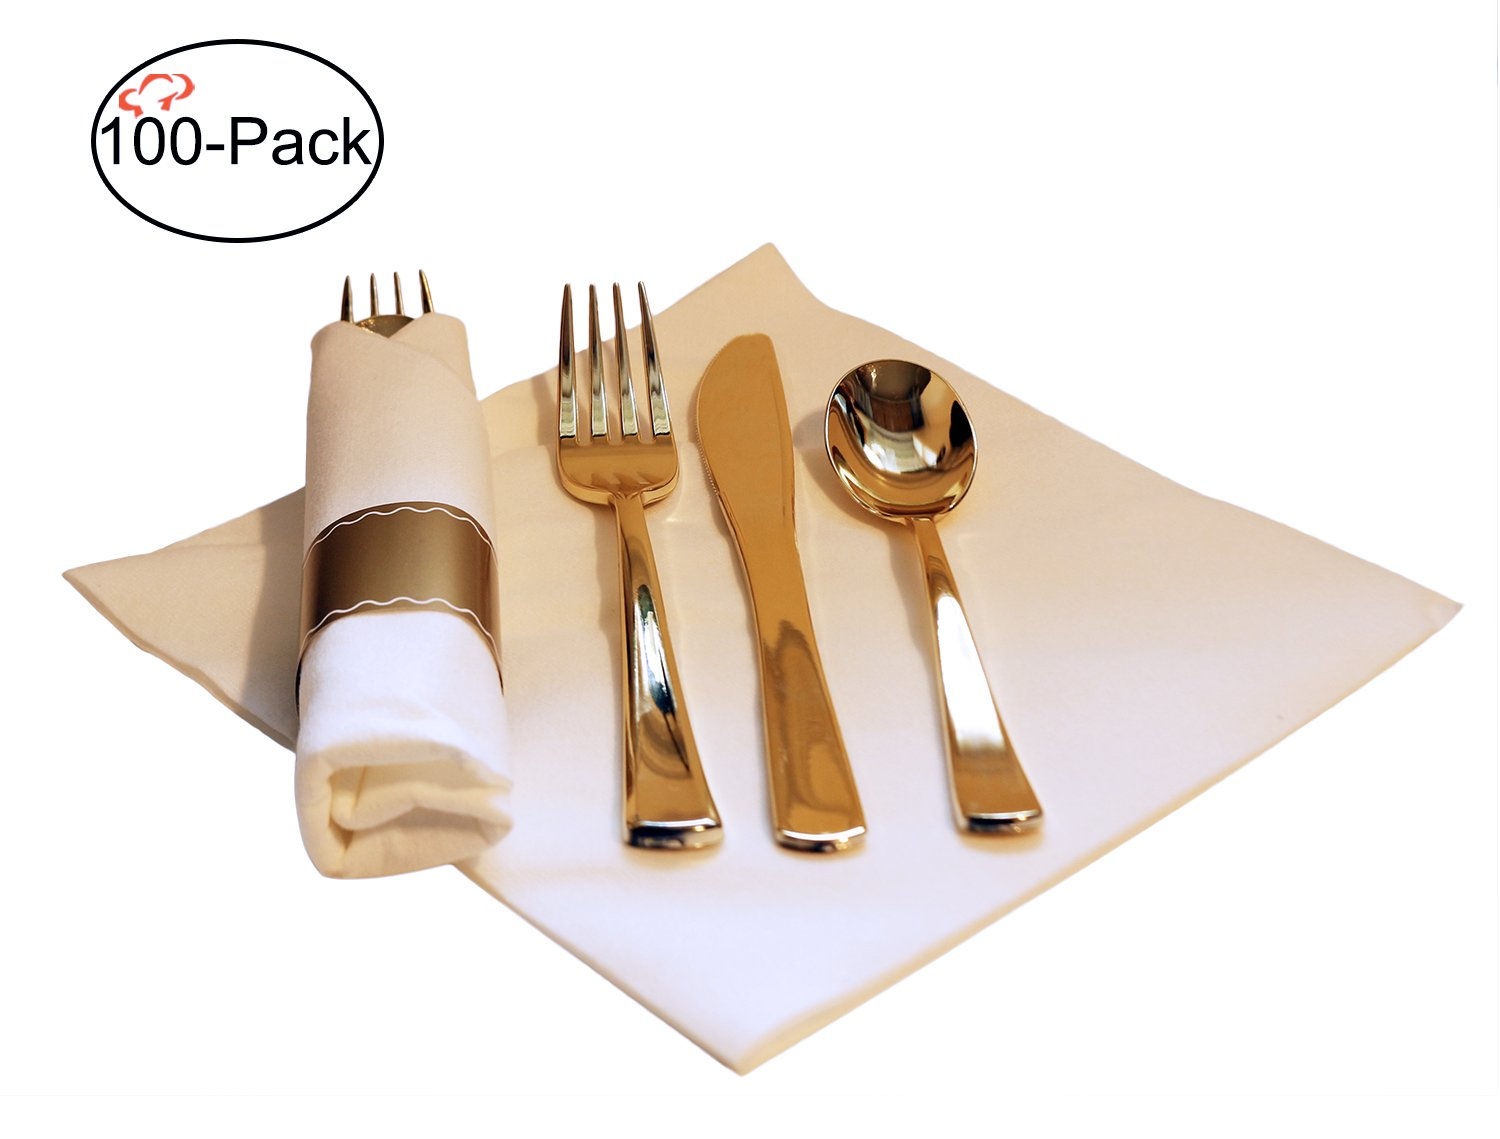 Tiger Chef 100-Pack 16-inch Pre Rolled Cutlery in Linen-Feel White Napkins and Gold Heavy Weight Plastic Silverware with Napkin Band Set, Includes Forks, Spoons and Knives in Rolled Napkins BPA-free